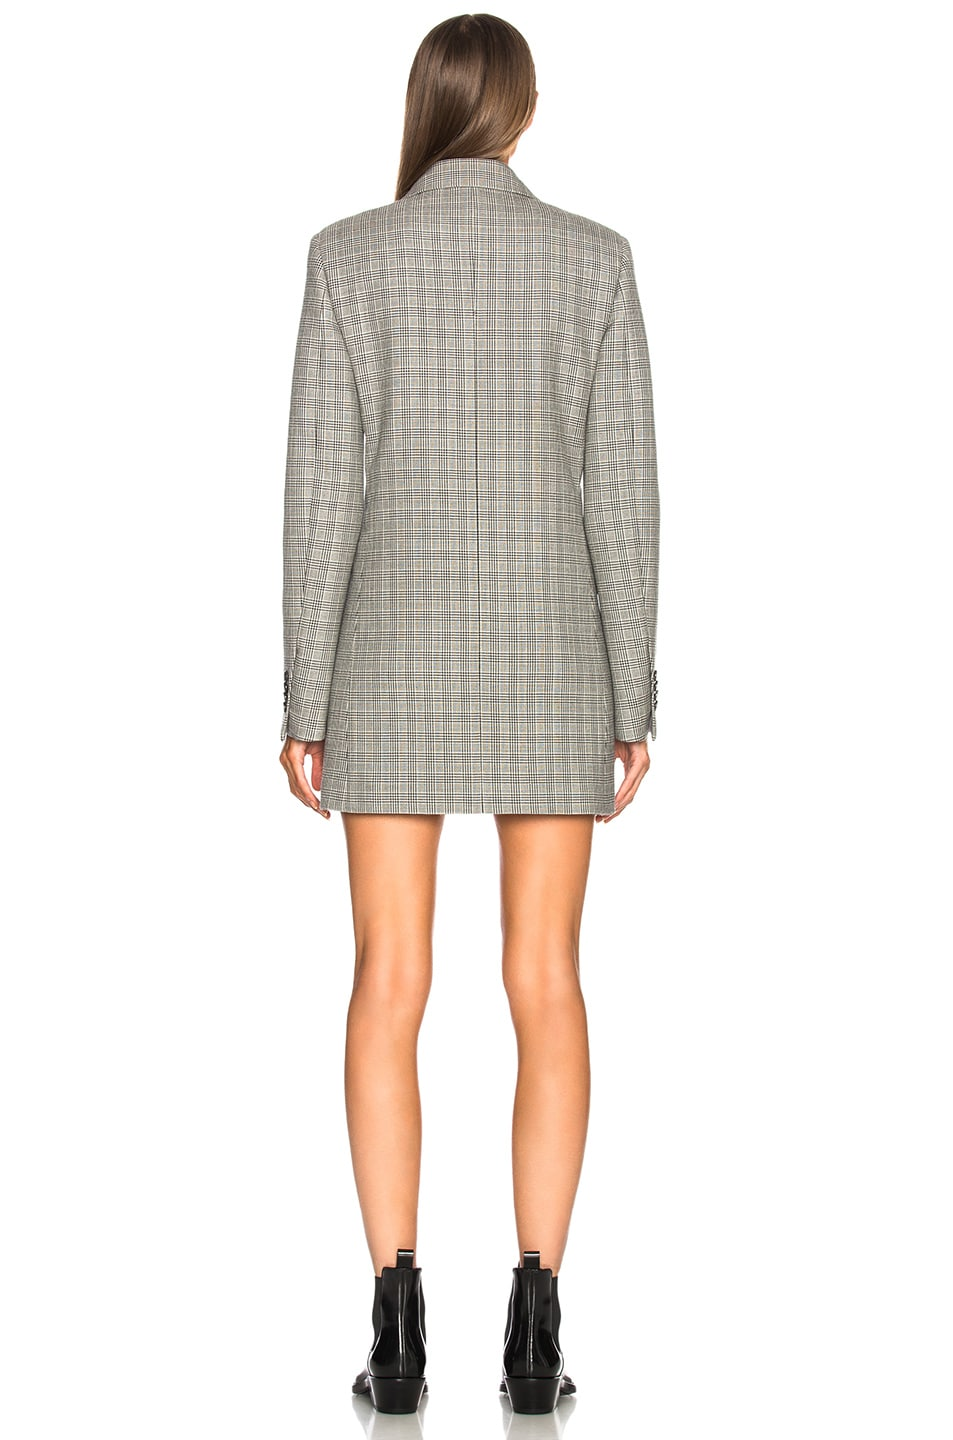 Image 3 of CALVIN KLEIN 205W39NYC Double Face Glen Plaid High Twisted Wool Blazer Dress in Black & White